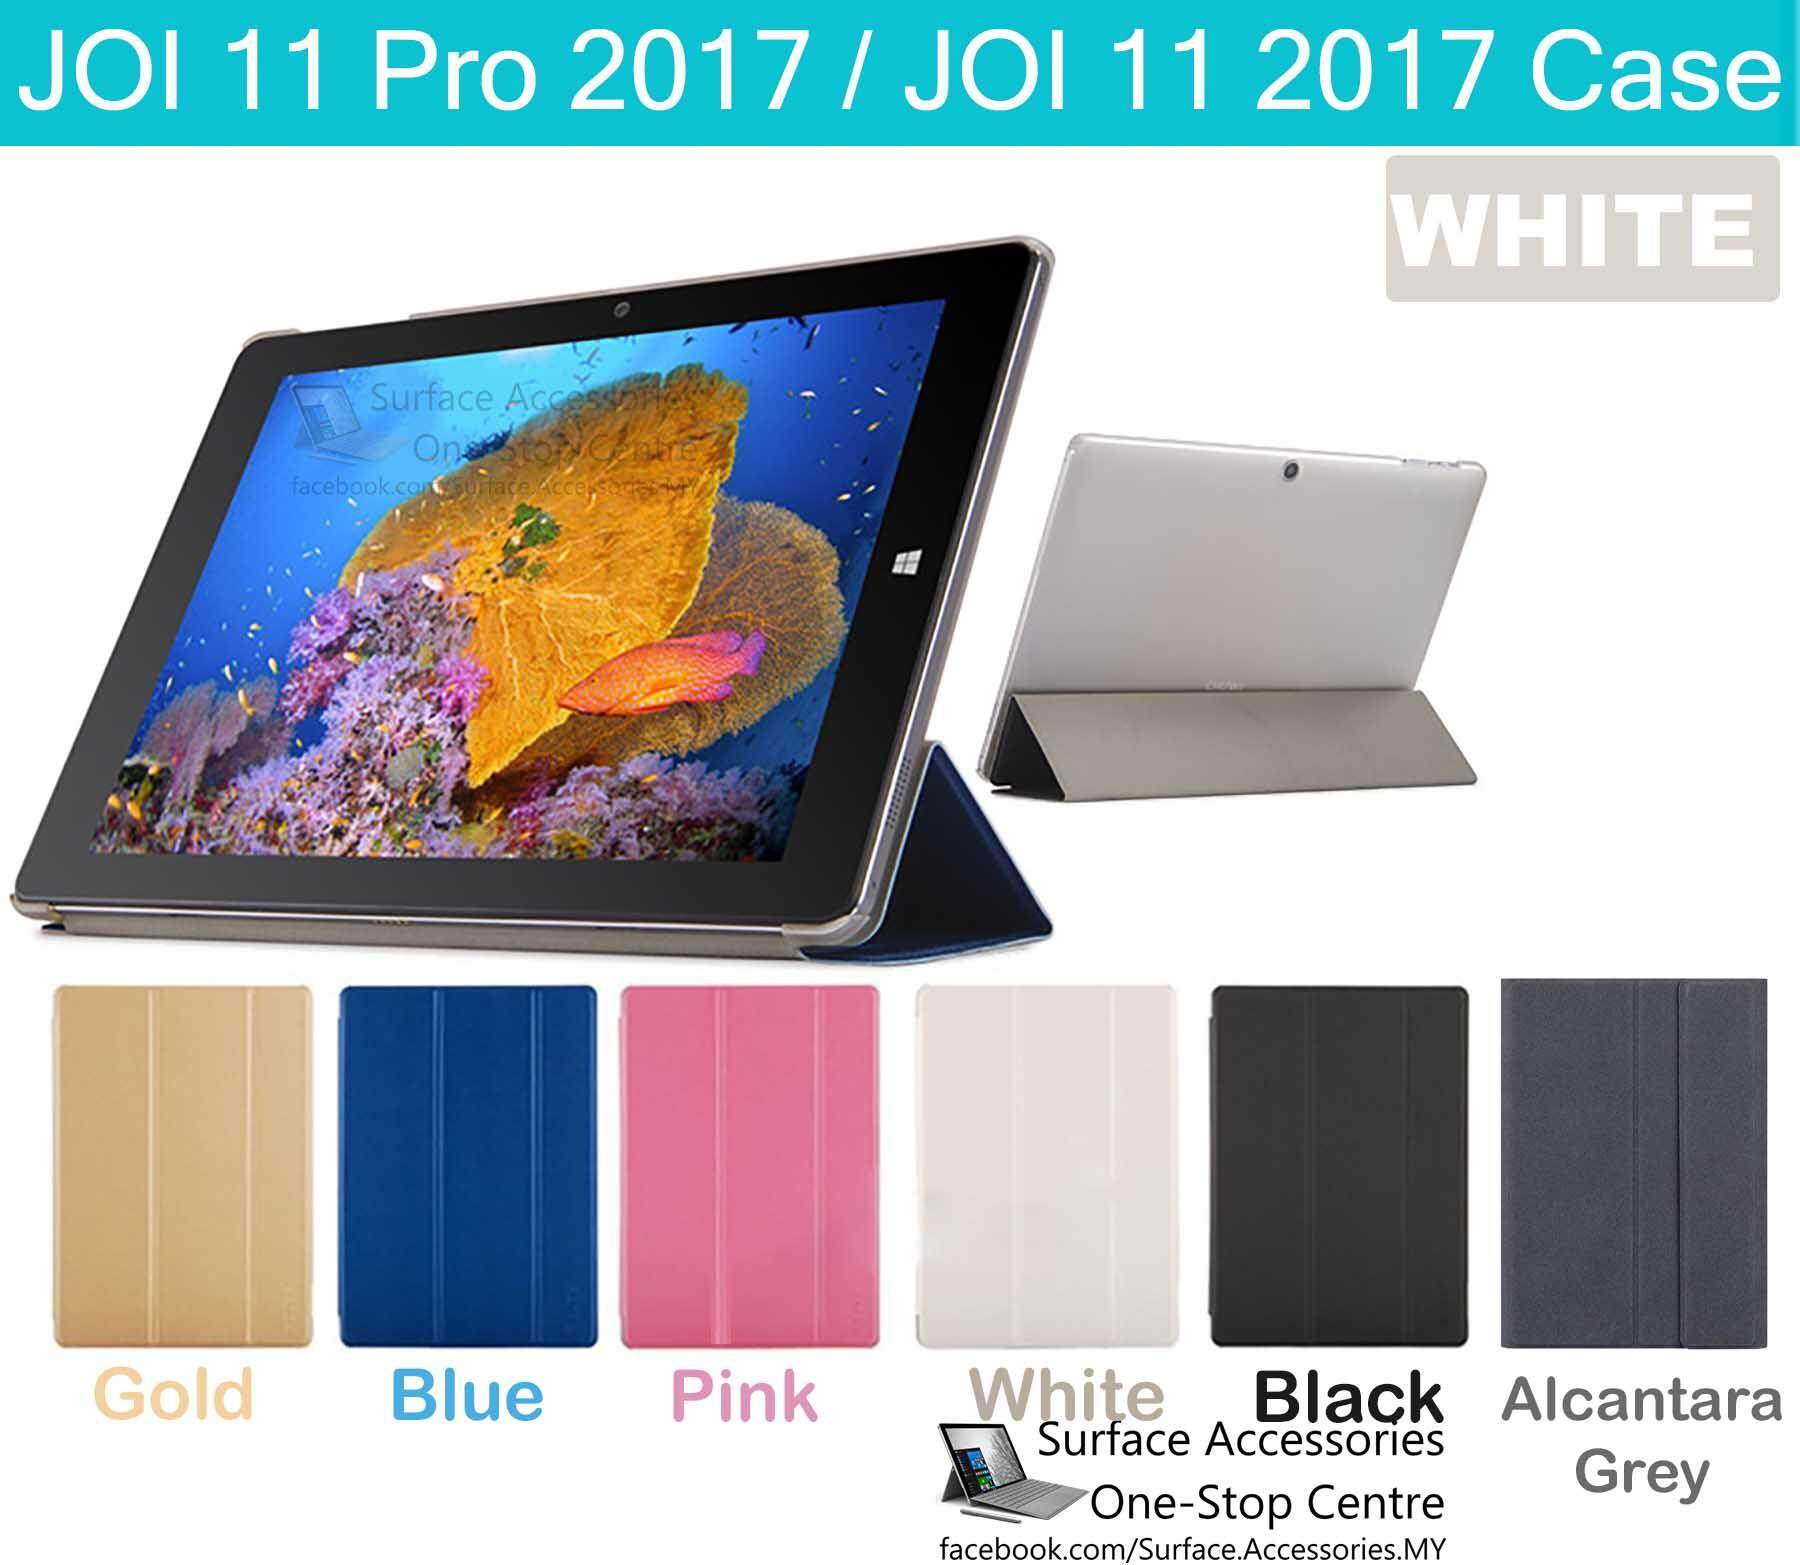 [MALAYSIA]JOI 11 2017 Case Stand Cover Full Protection Cover Ultimate Case Stand Flip Case